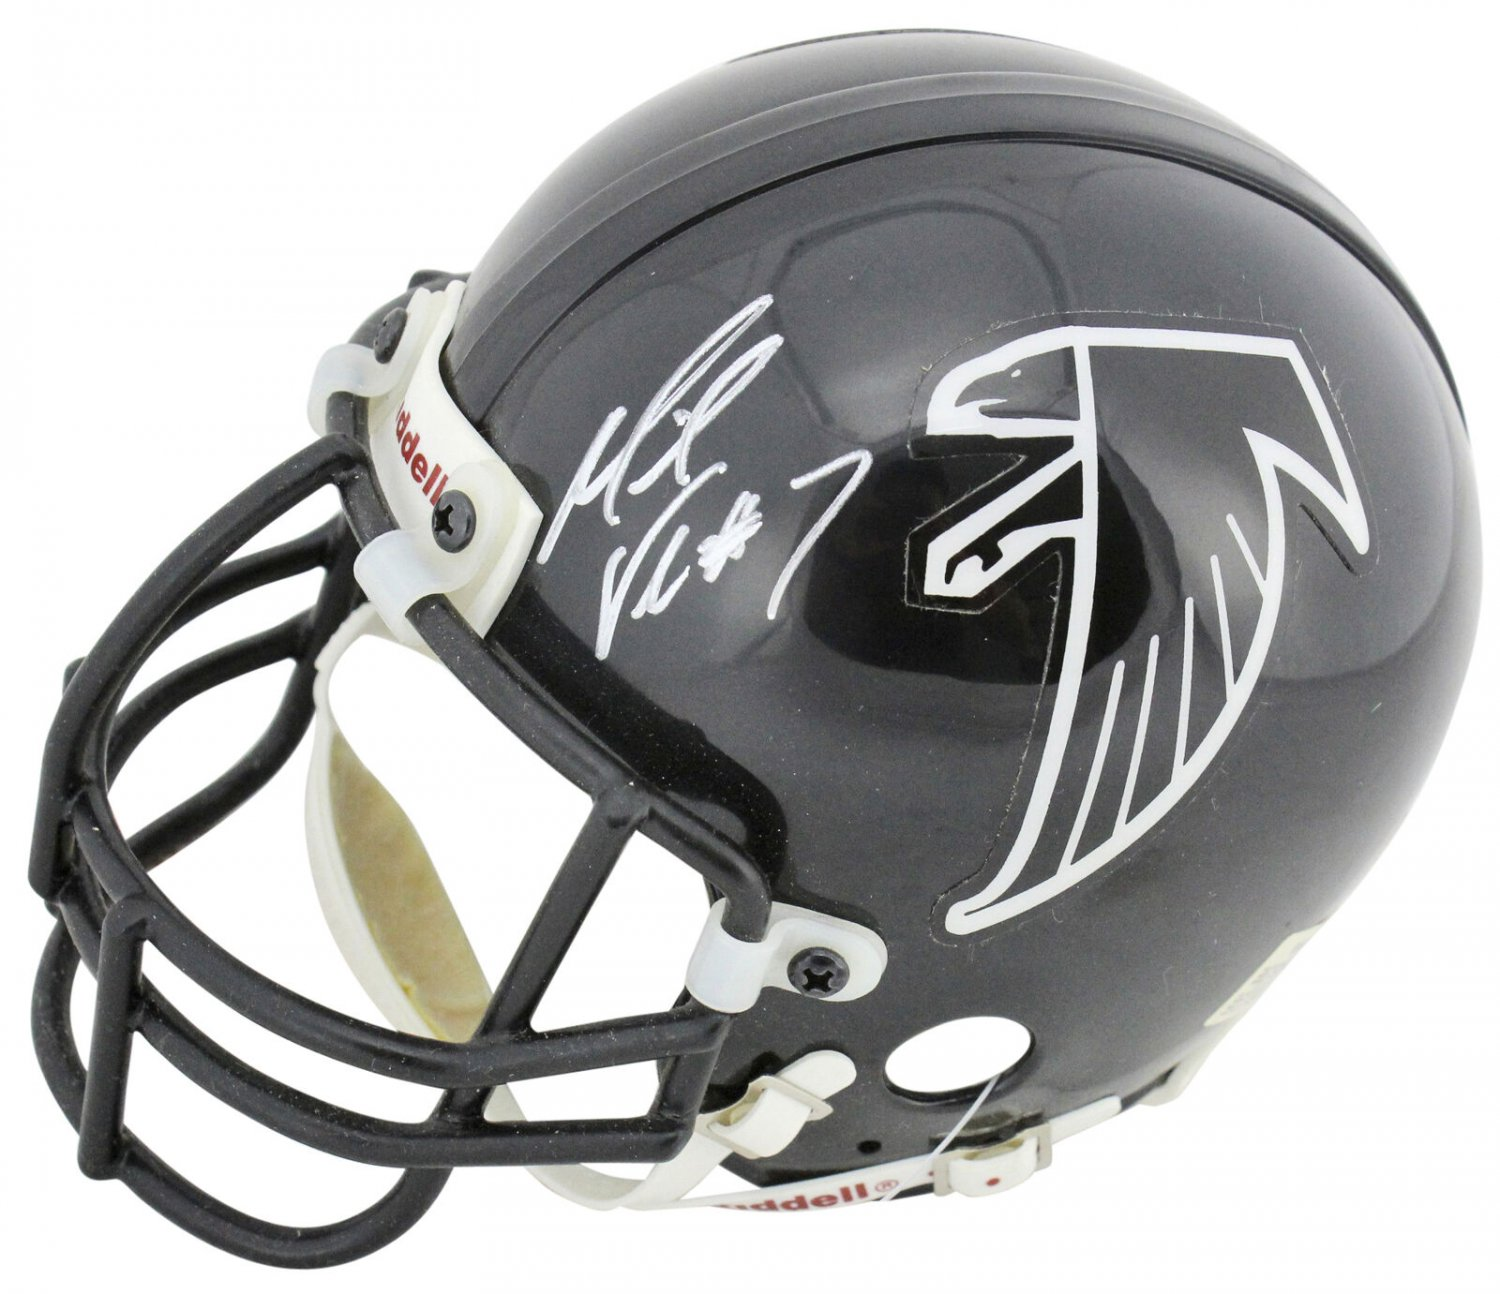 Michael Vick Signed Autographed Atlanta Falcons Mini Helmet BECKETT